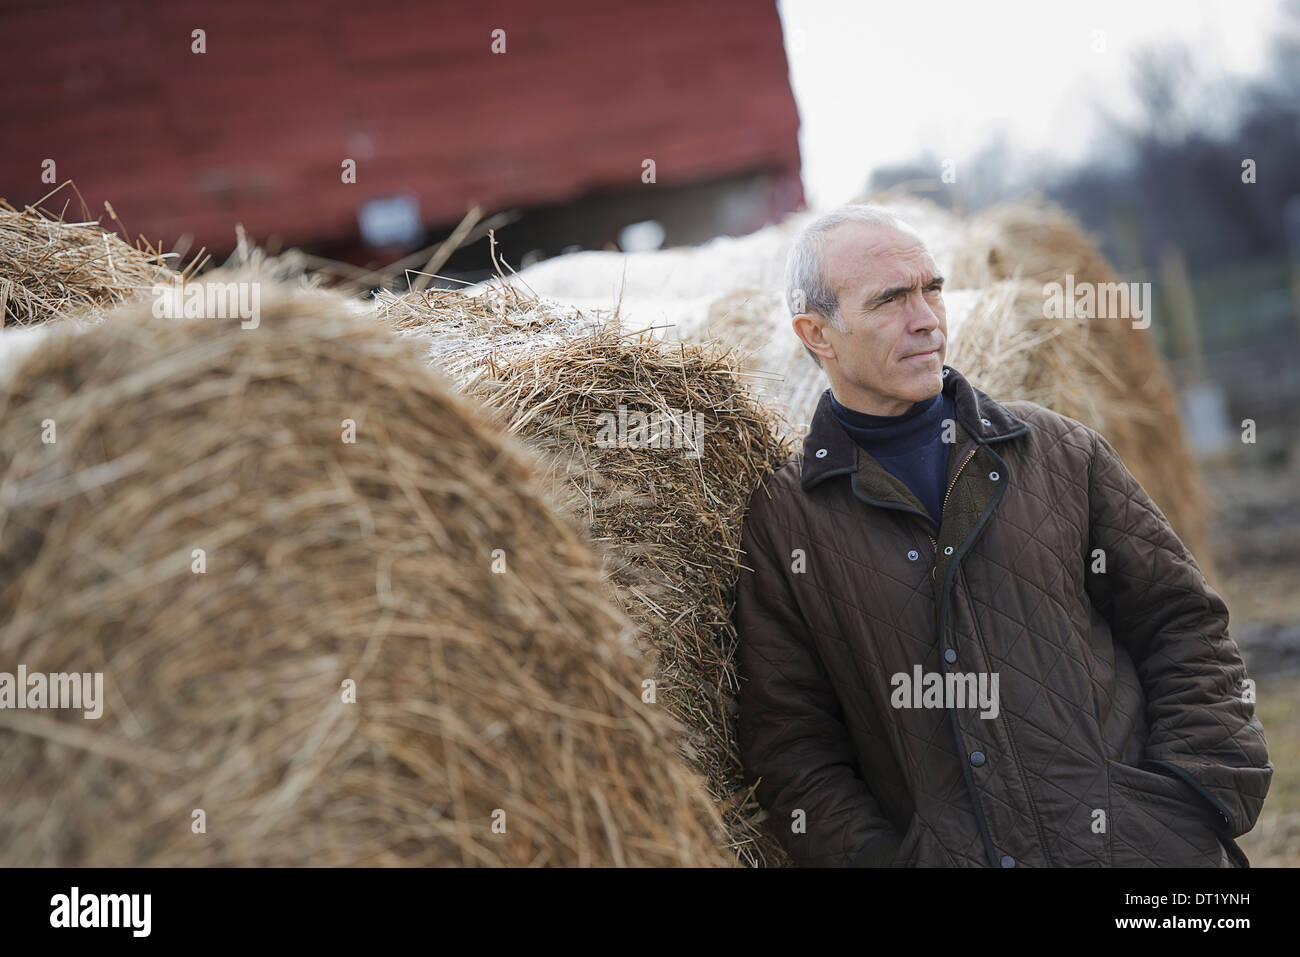 An organic farm in winter A man standing beside large hay bales - Stock Image